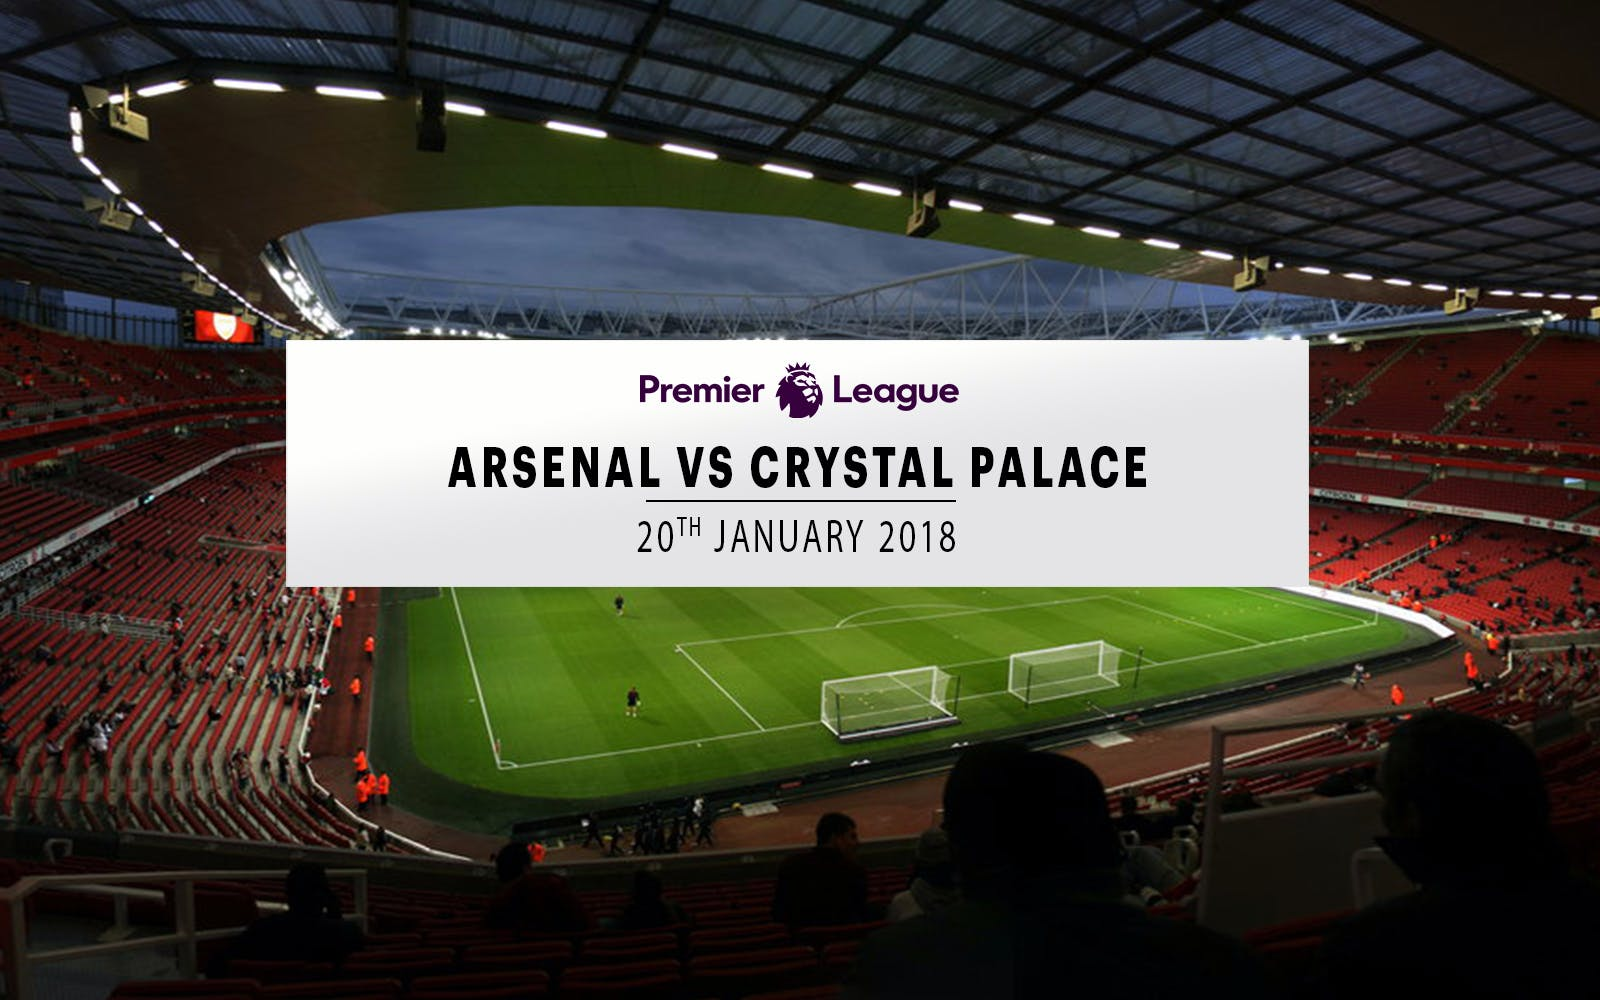 arsenal vs crystal palace - 20th january 2018-1